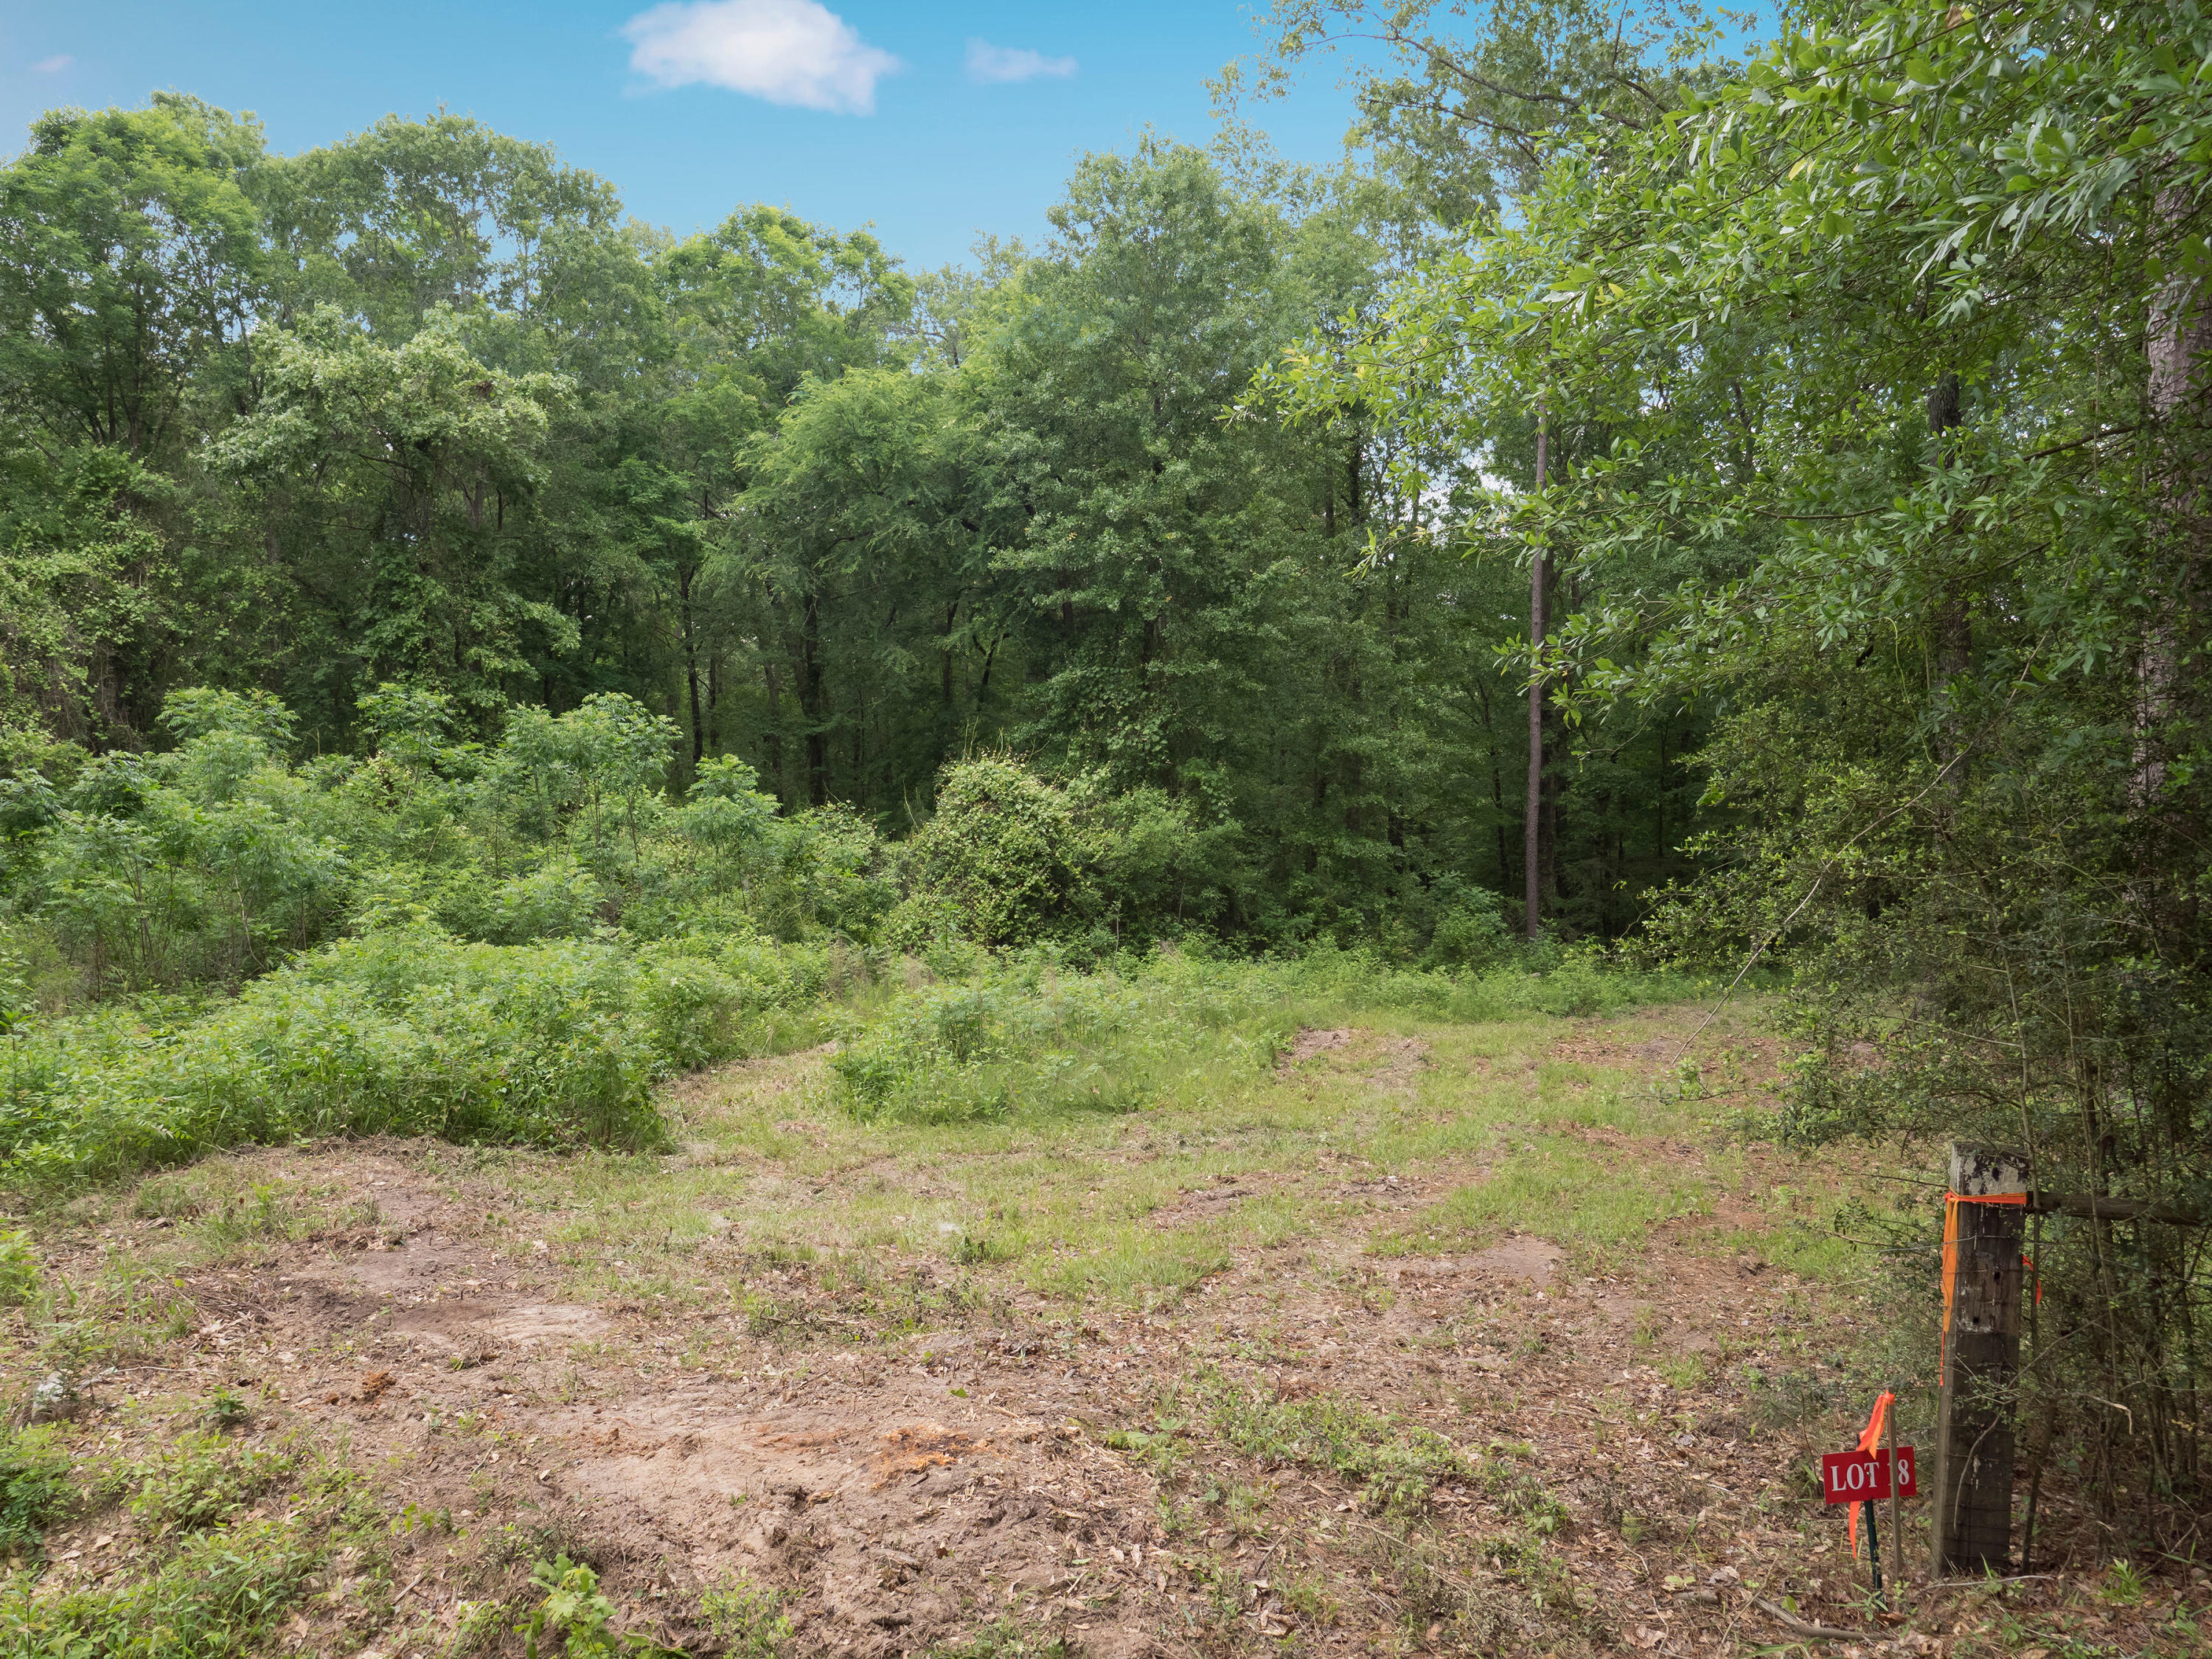 Anacoco land for sale,  Lot 18 Holly Estates Road, Anacoco LA - $85,000